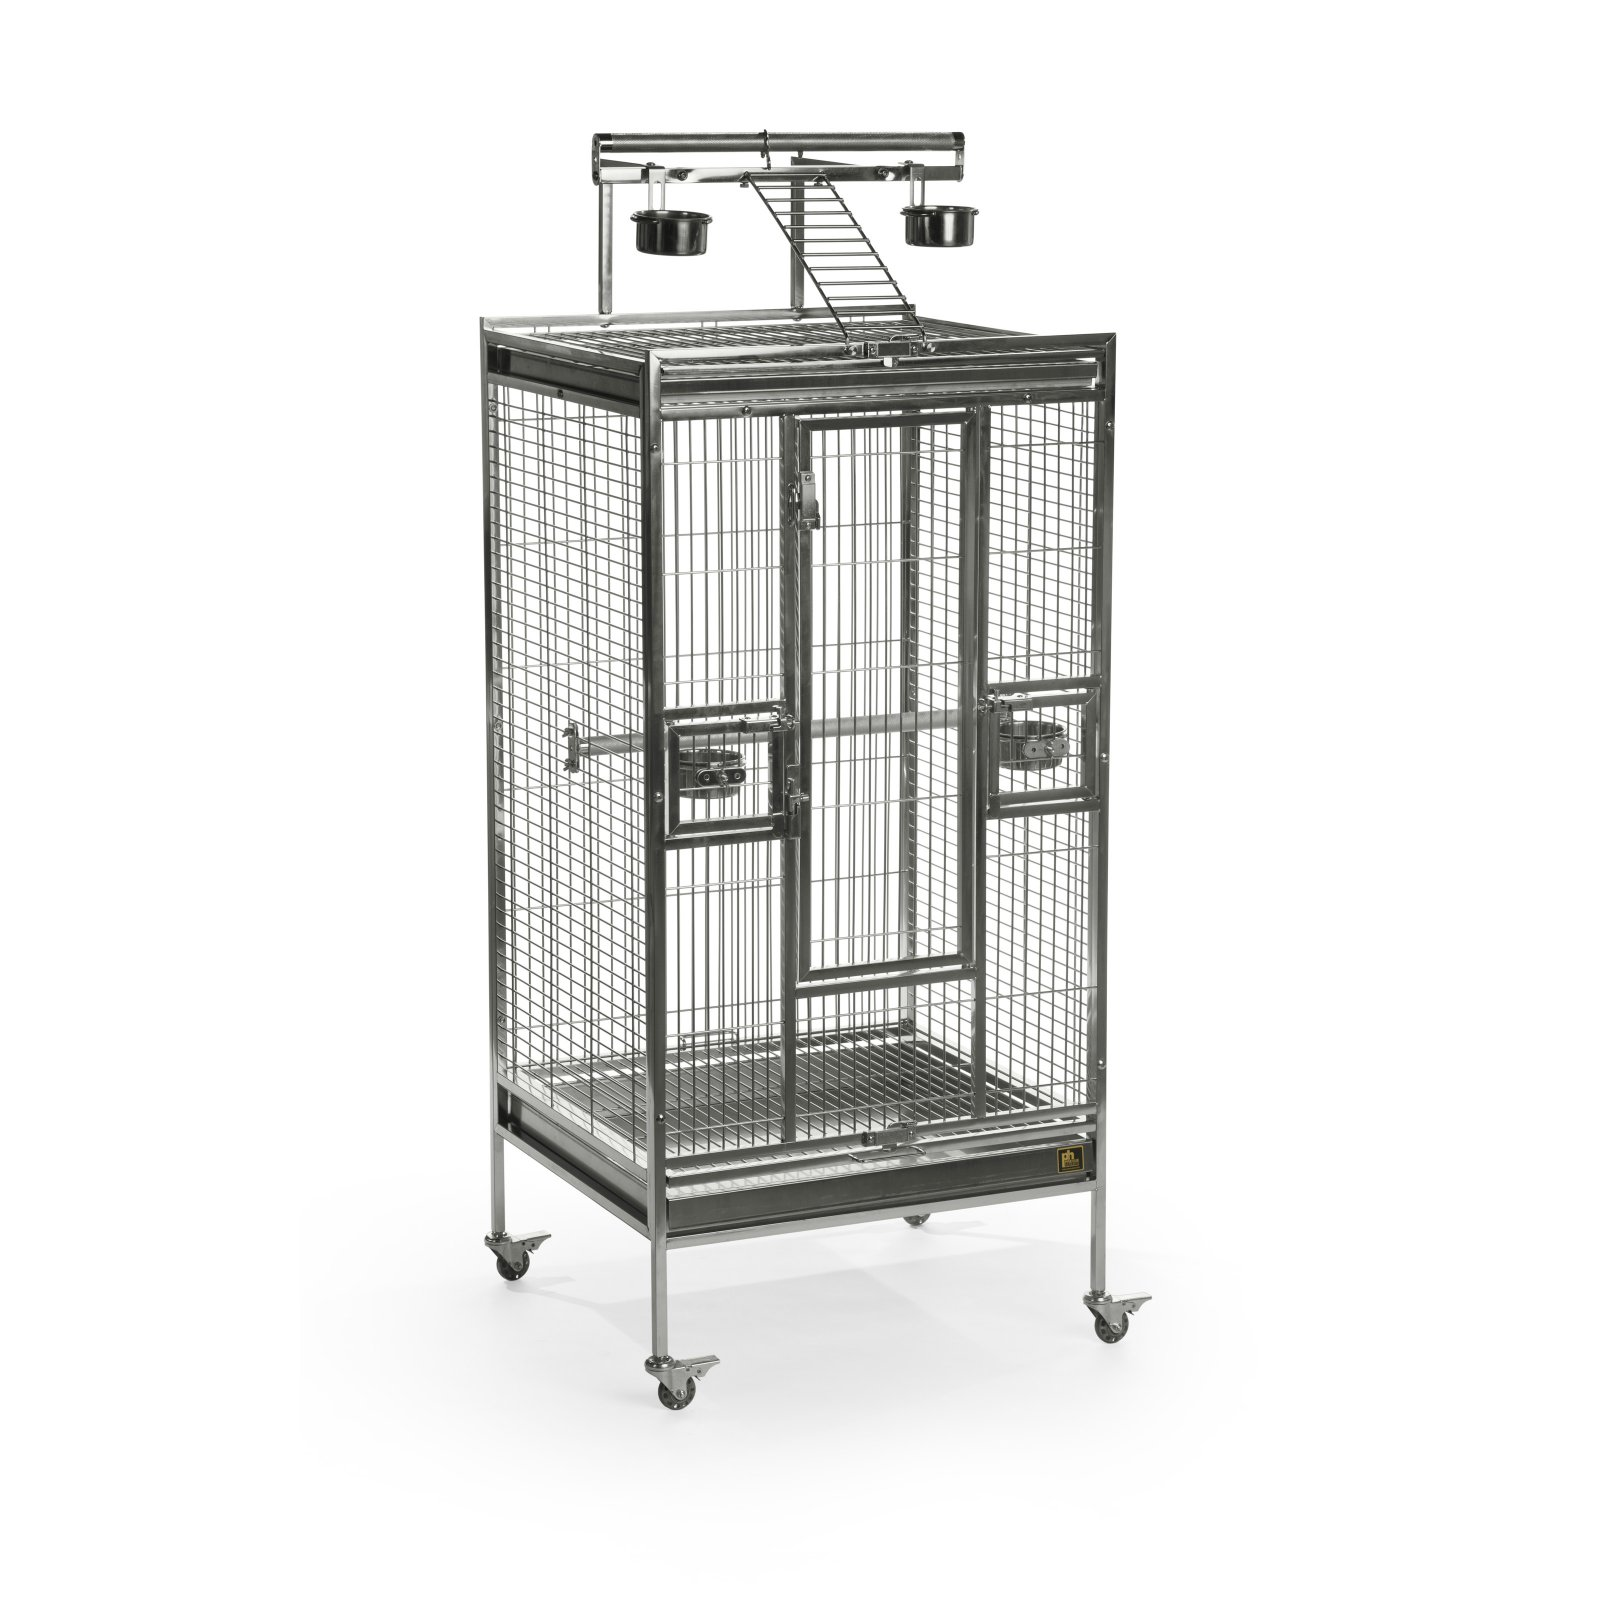 Prevue Pet Products Medium Stainless Steel Playtop Bird Cage 3453